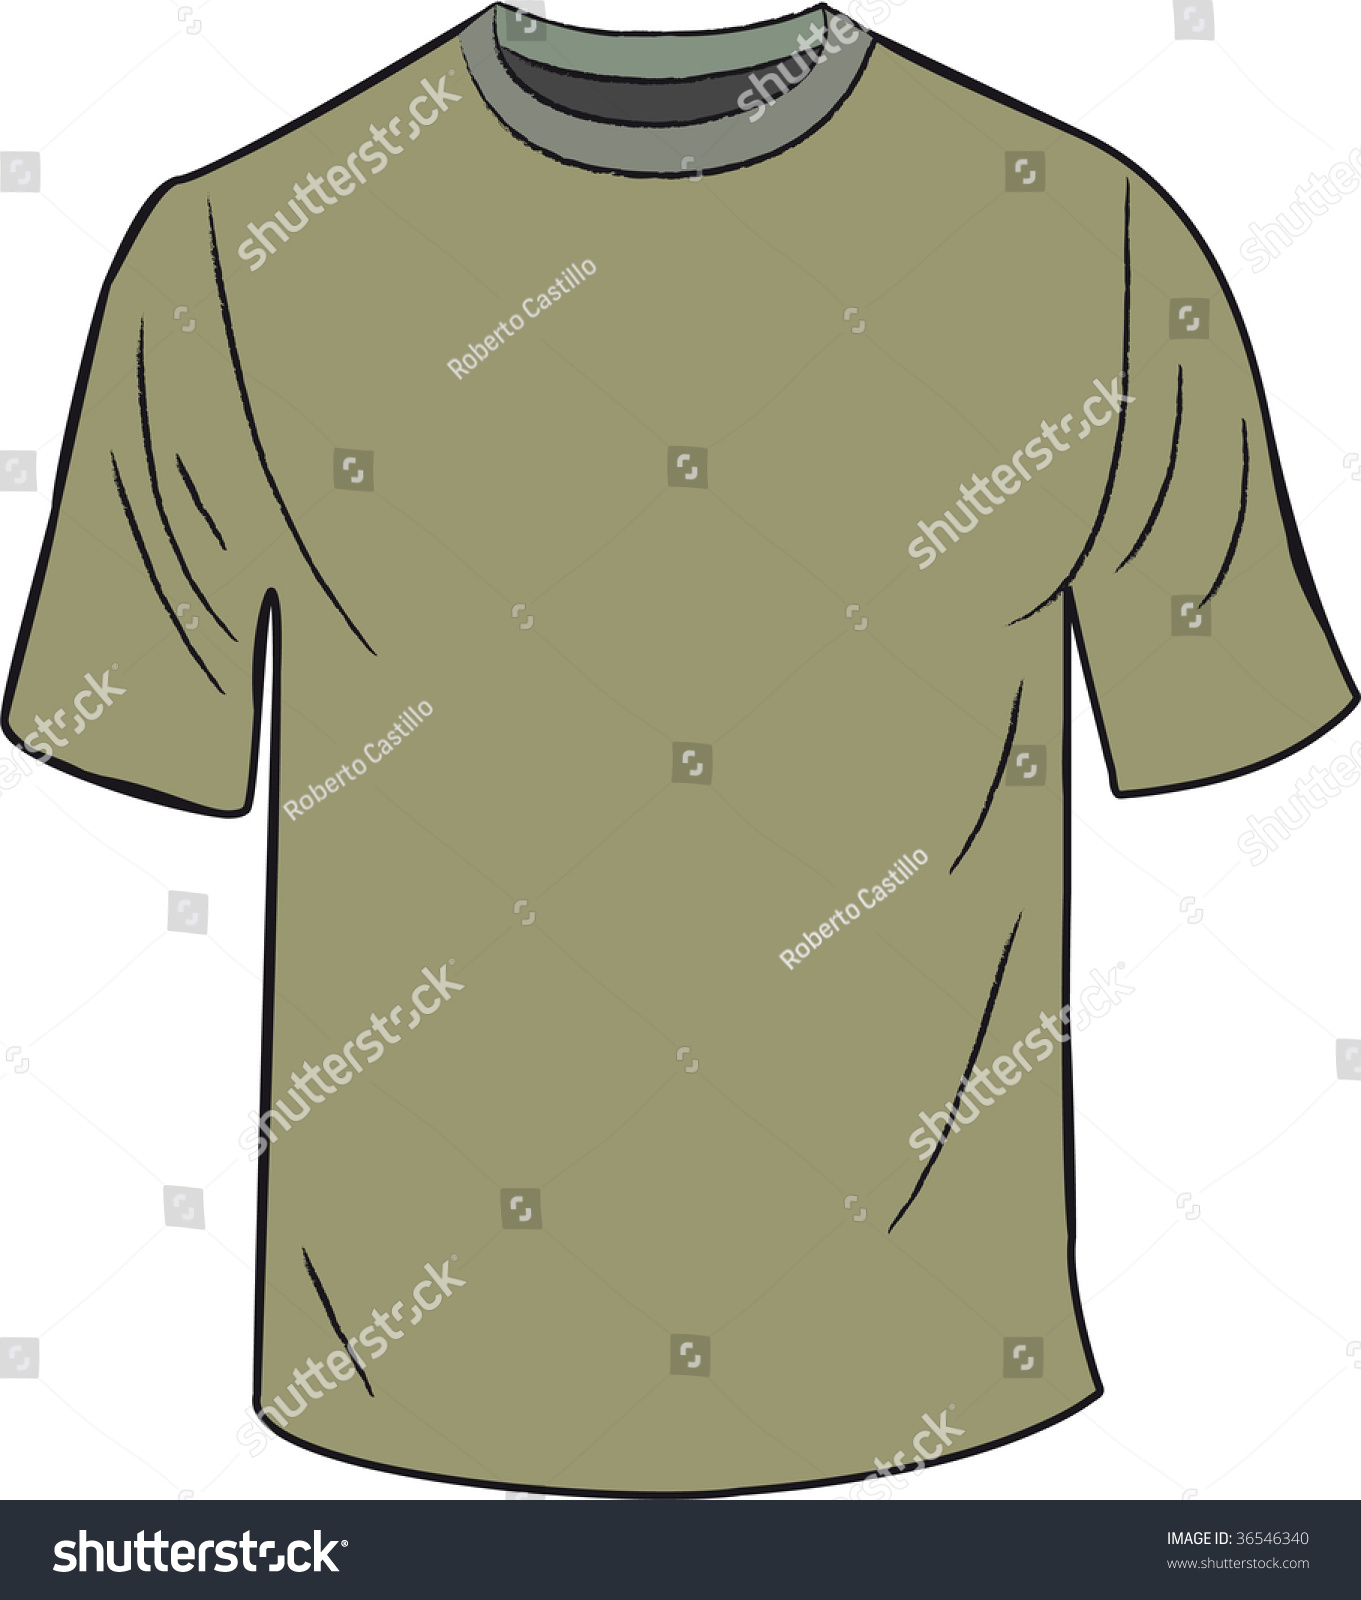 Green tshirt design template stock vector 36546340 for Typography t shirt design template